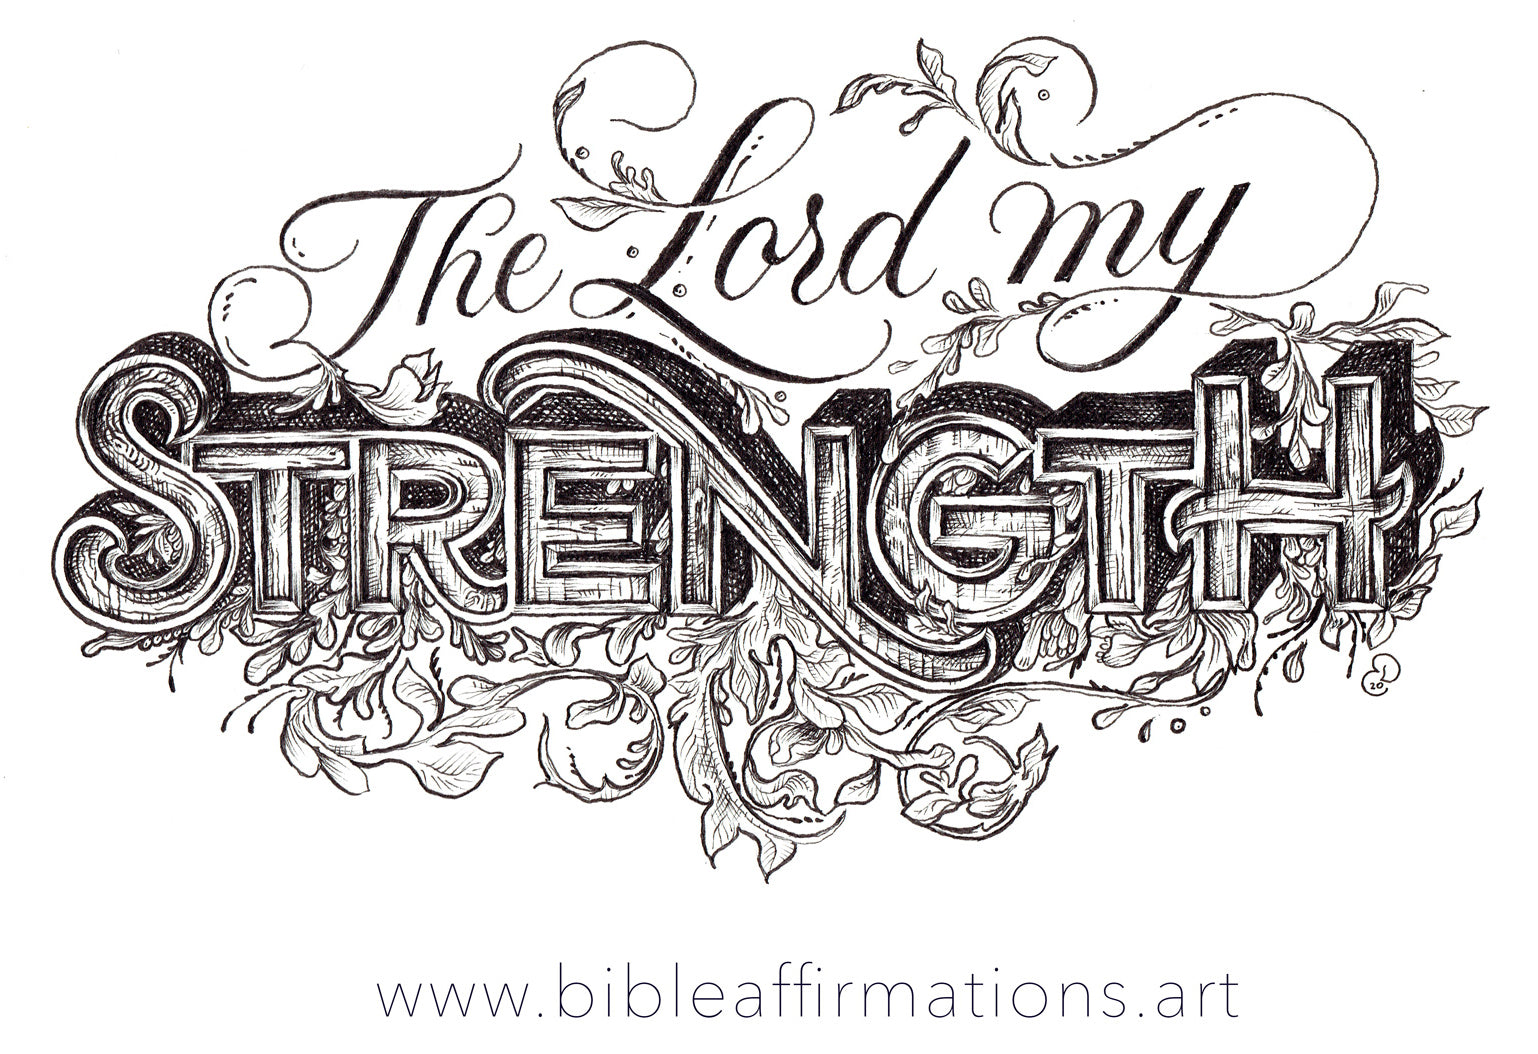 """Handlettered drawing in vintage style reads """"The Lord my strength"""" with text underneath in a font reading """"www.bibleaffirmations.art"""""""